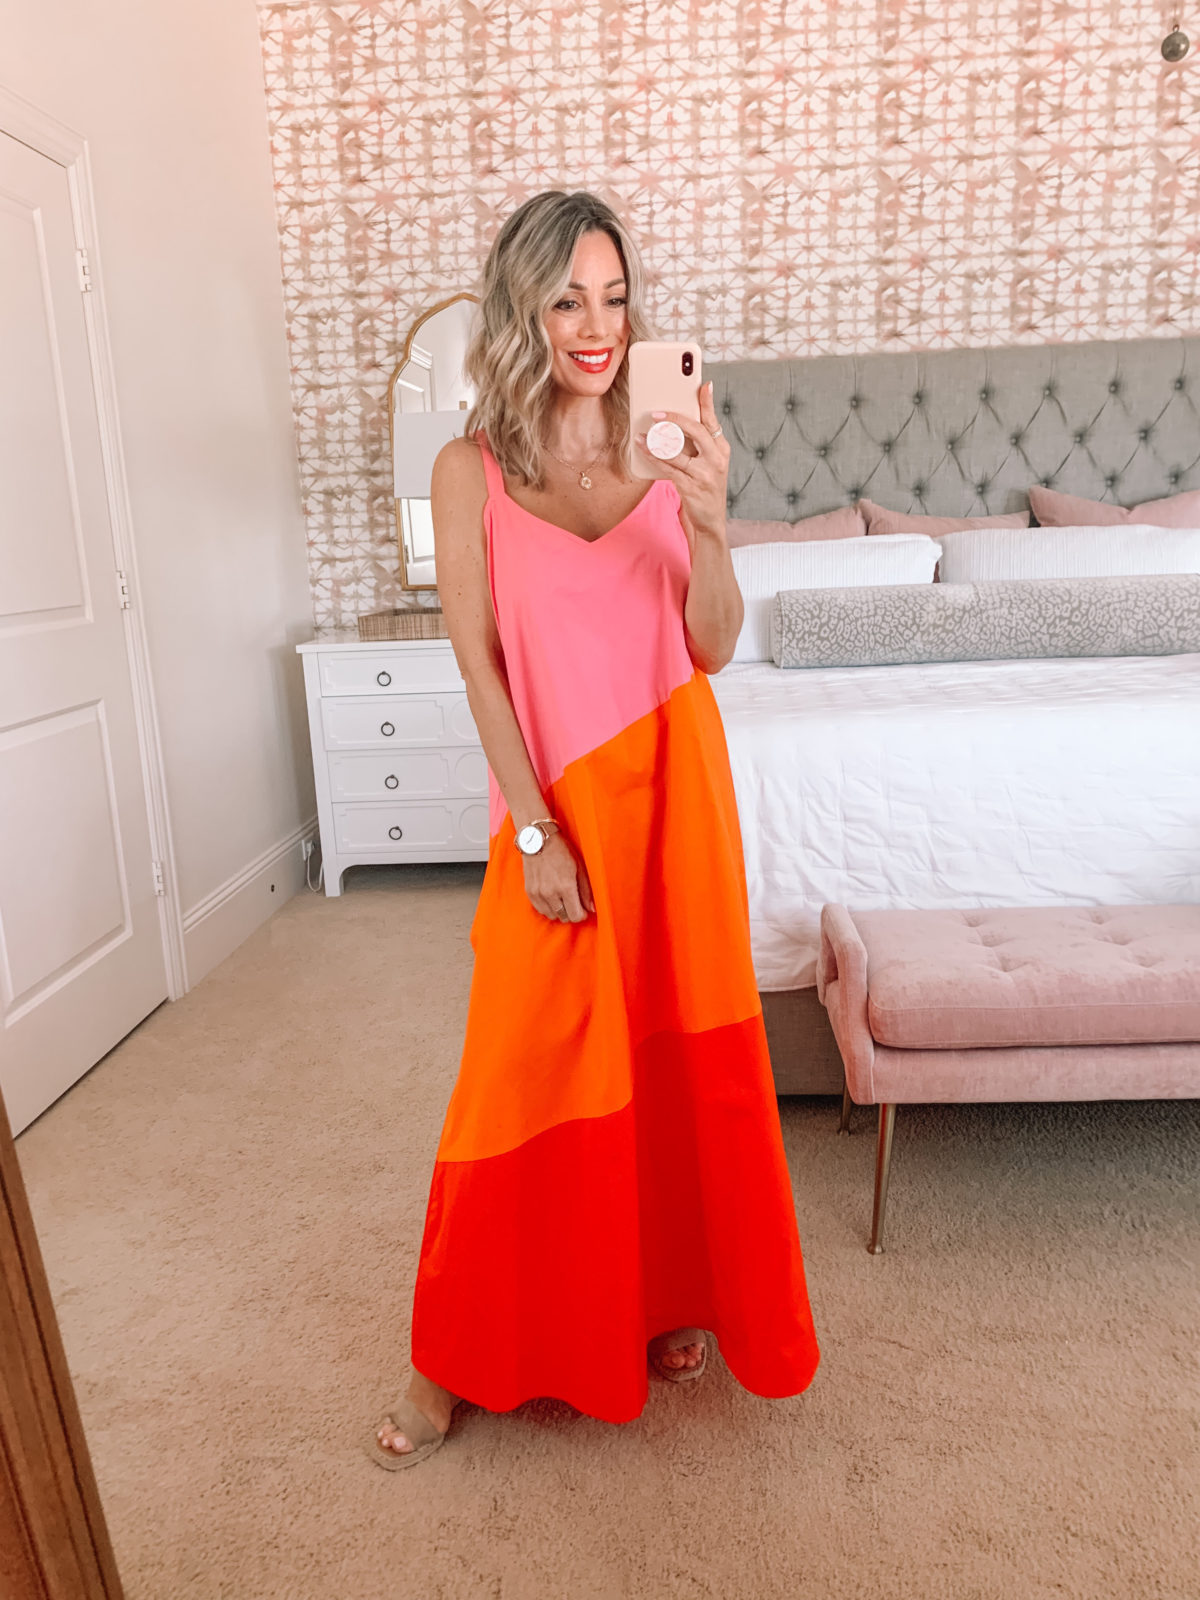 Amazon Fashion Faves, Colorblock dress in Pink, Orange, and Red, with wedges